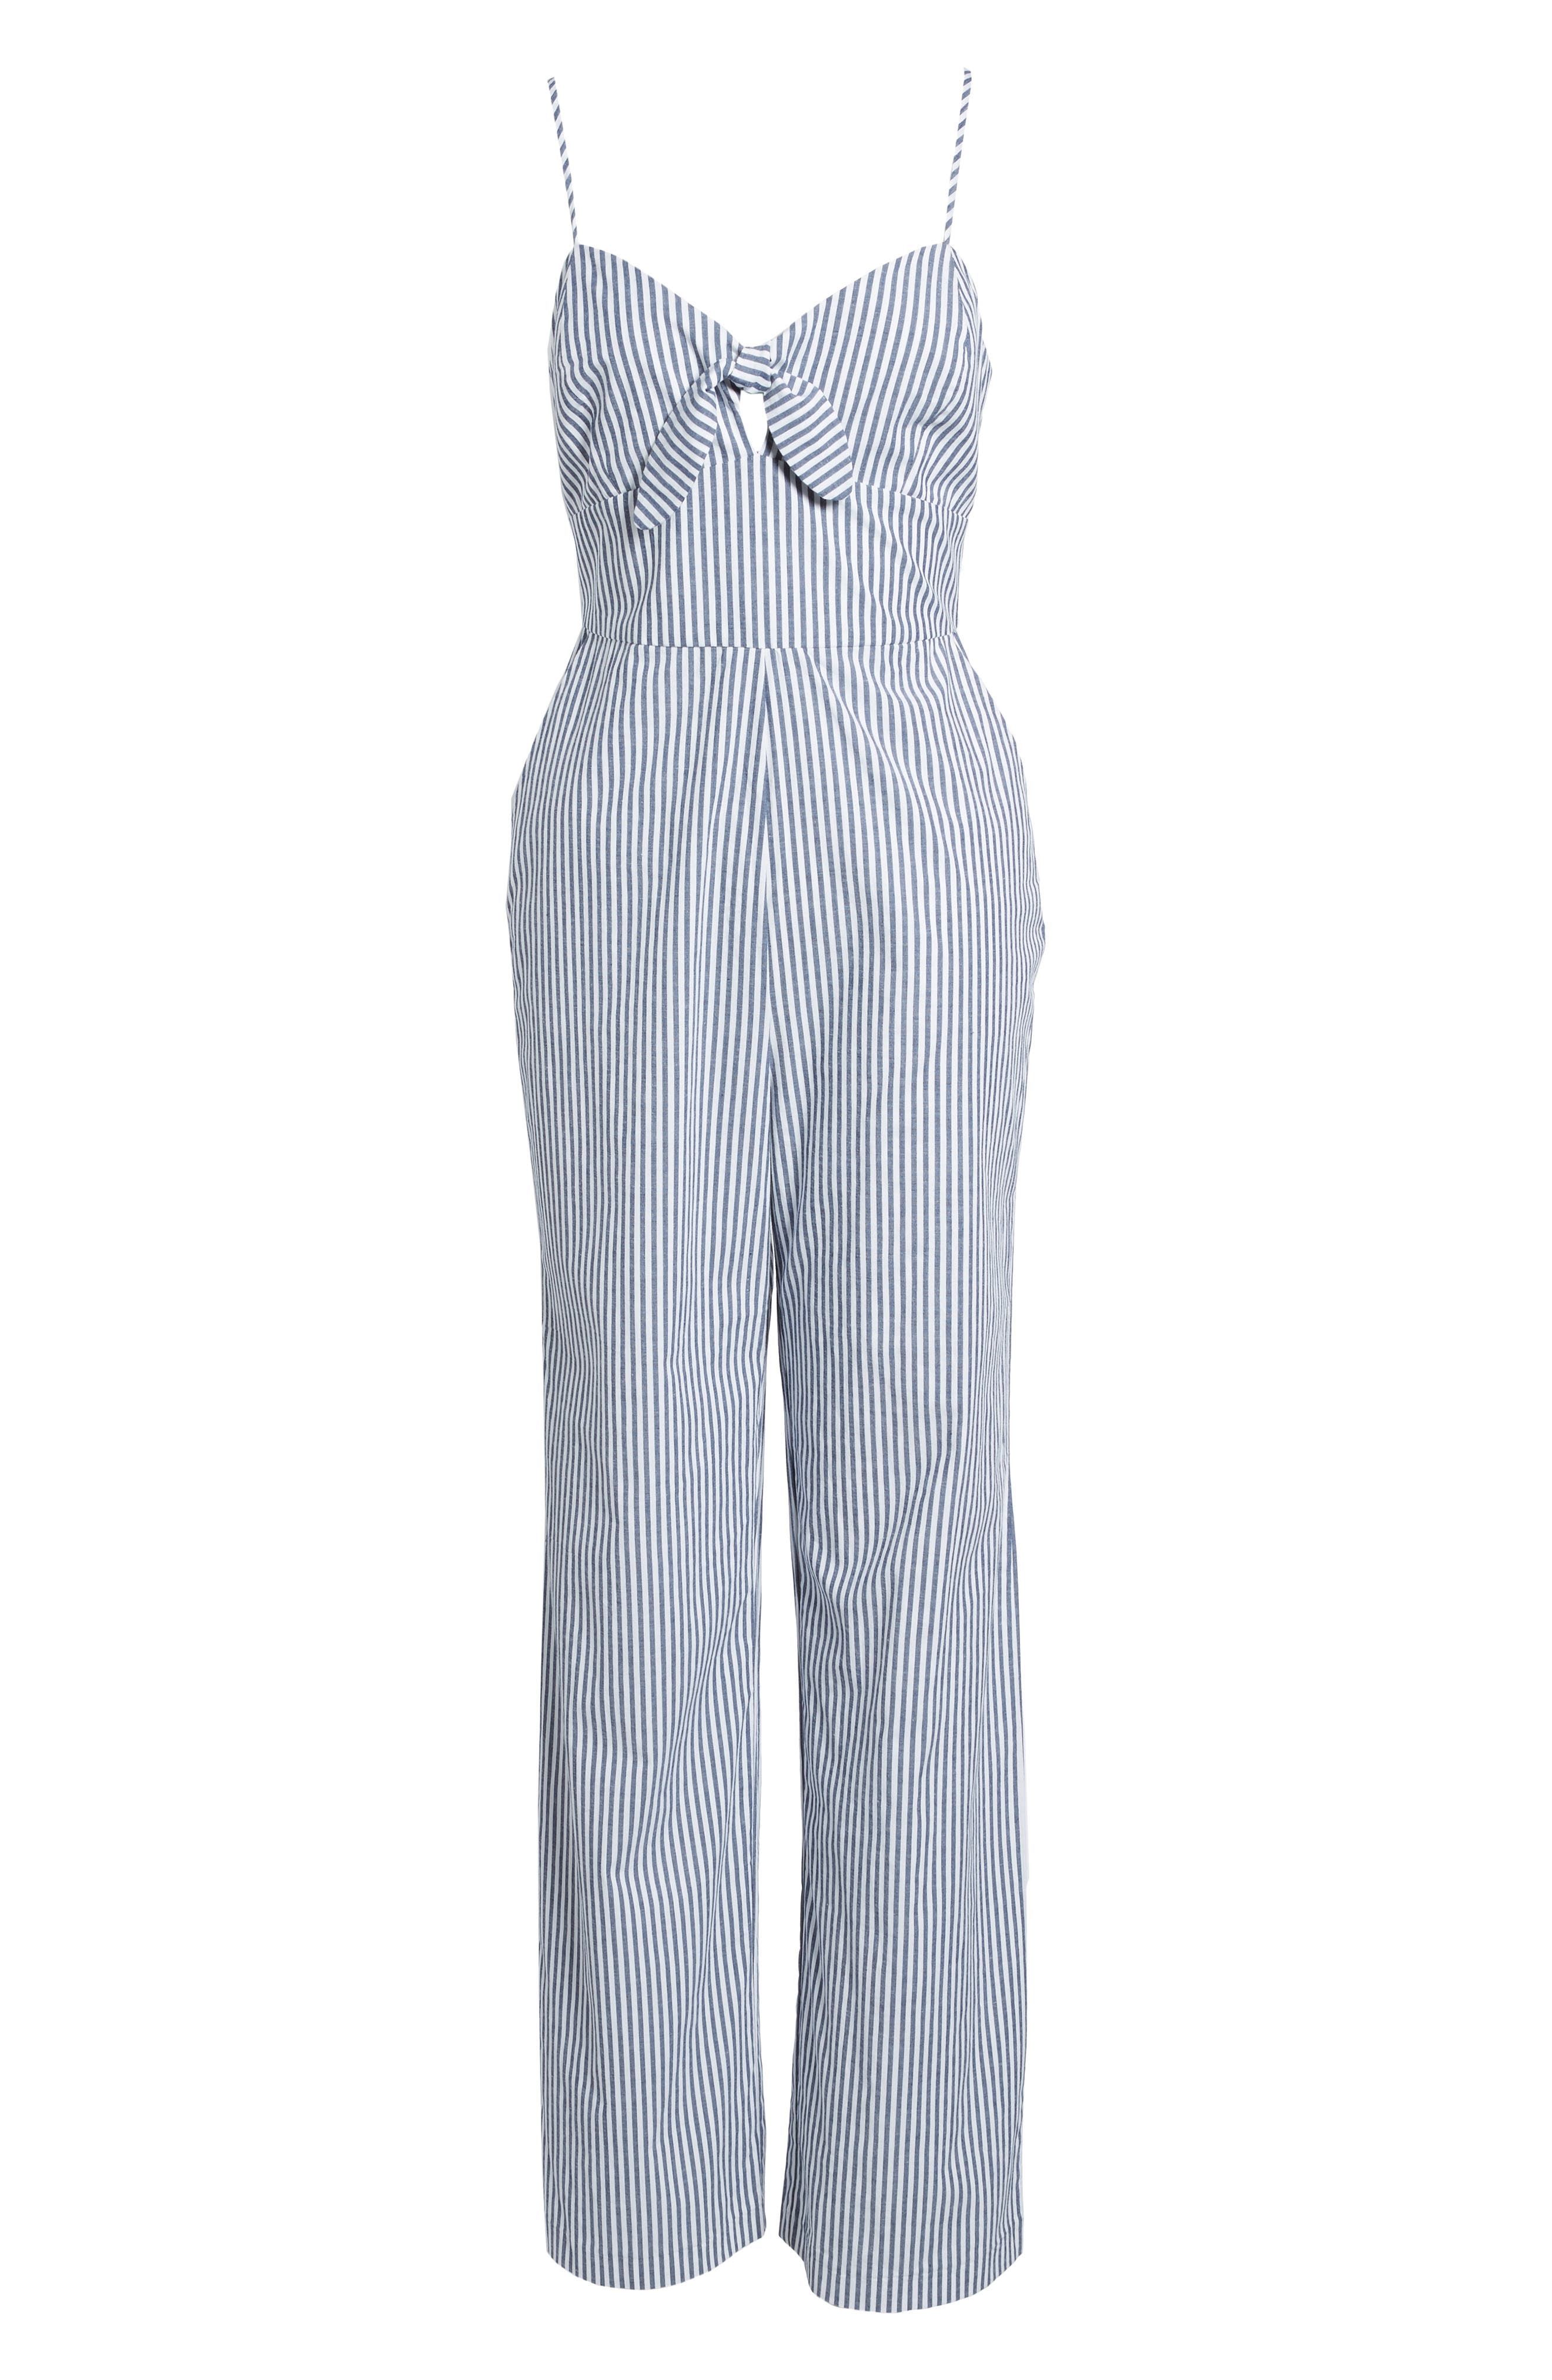 Tie Front Jumpsuit,                             Alternate thumbnail 6, color,                             400